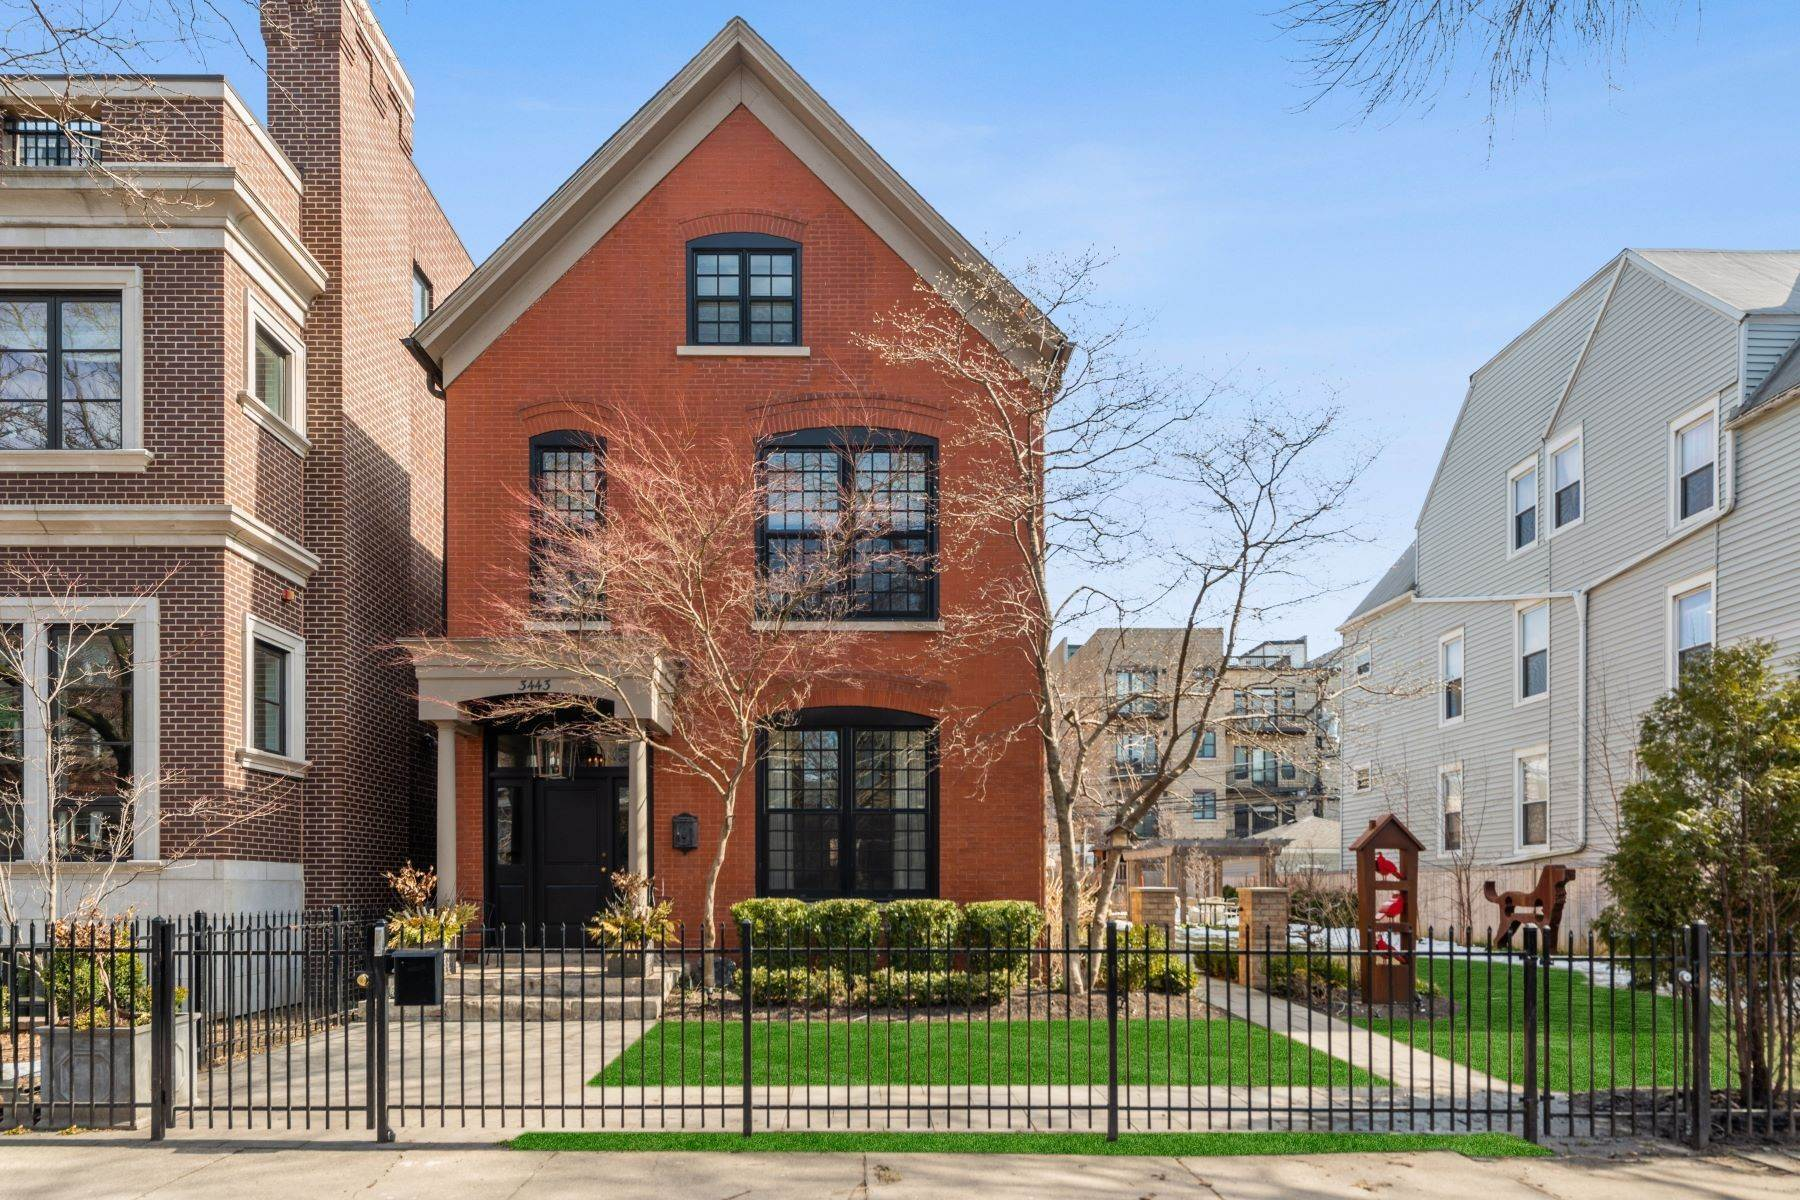 Single Family Homes for Sale at Rare Wide Lot Home 3439-43 N Janssen Avenue Chicago, Illinois 60657 United States